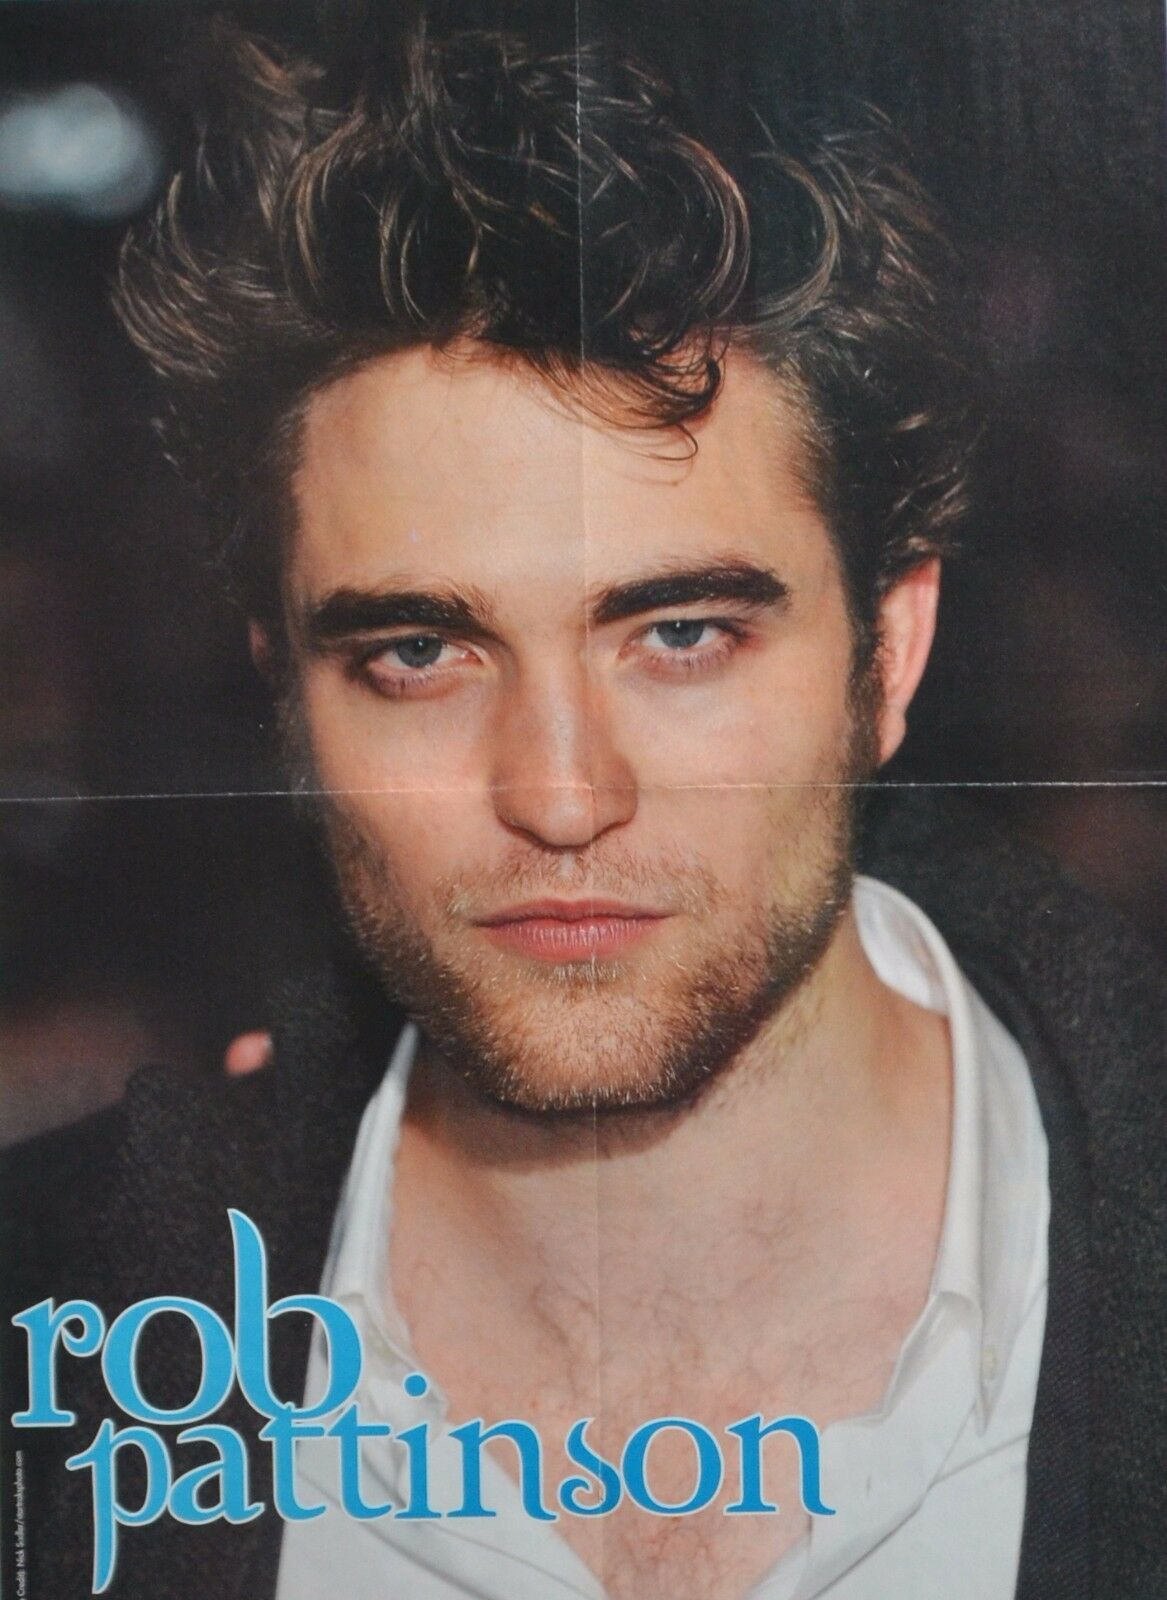 2087 Celebrity Poster Poster Print A0 A1 A2 A3 A4 ROBERT PATTINSON CLOSE UP